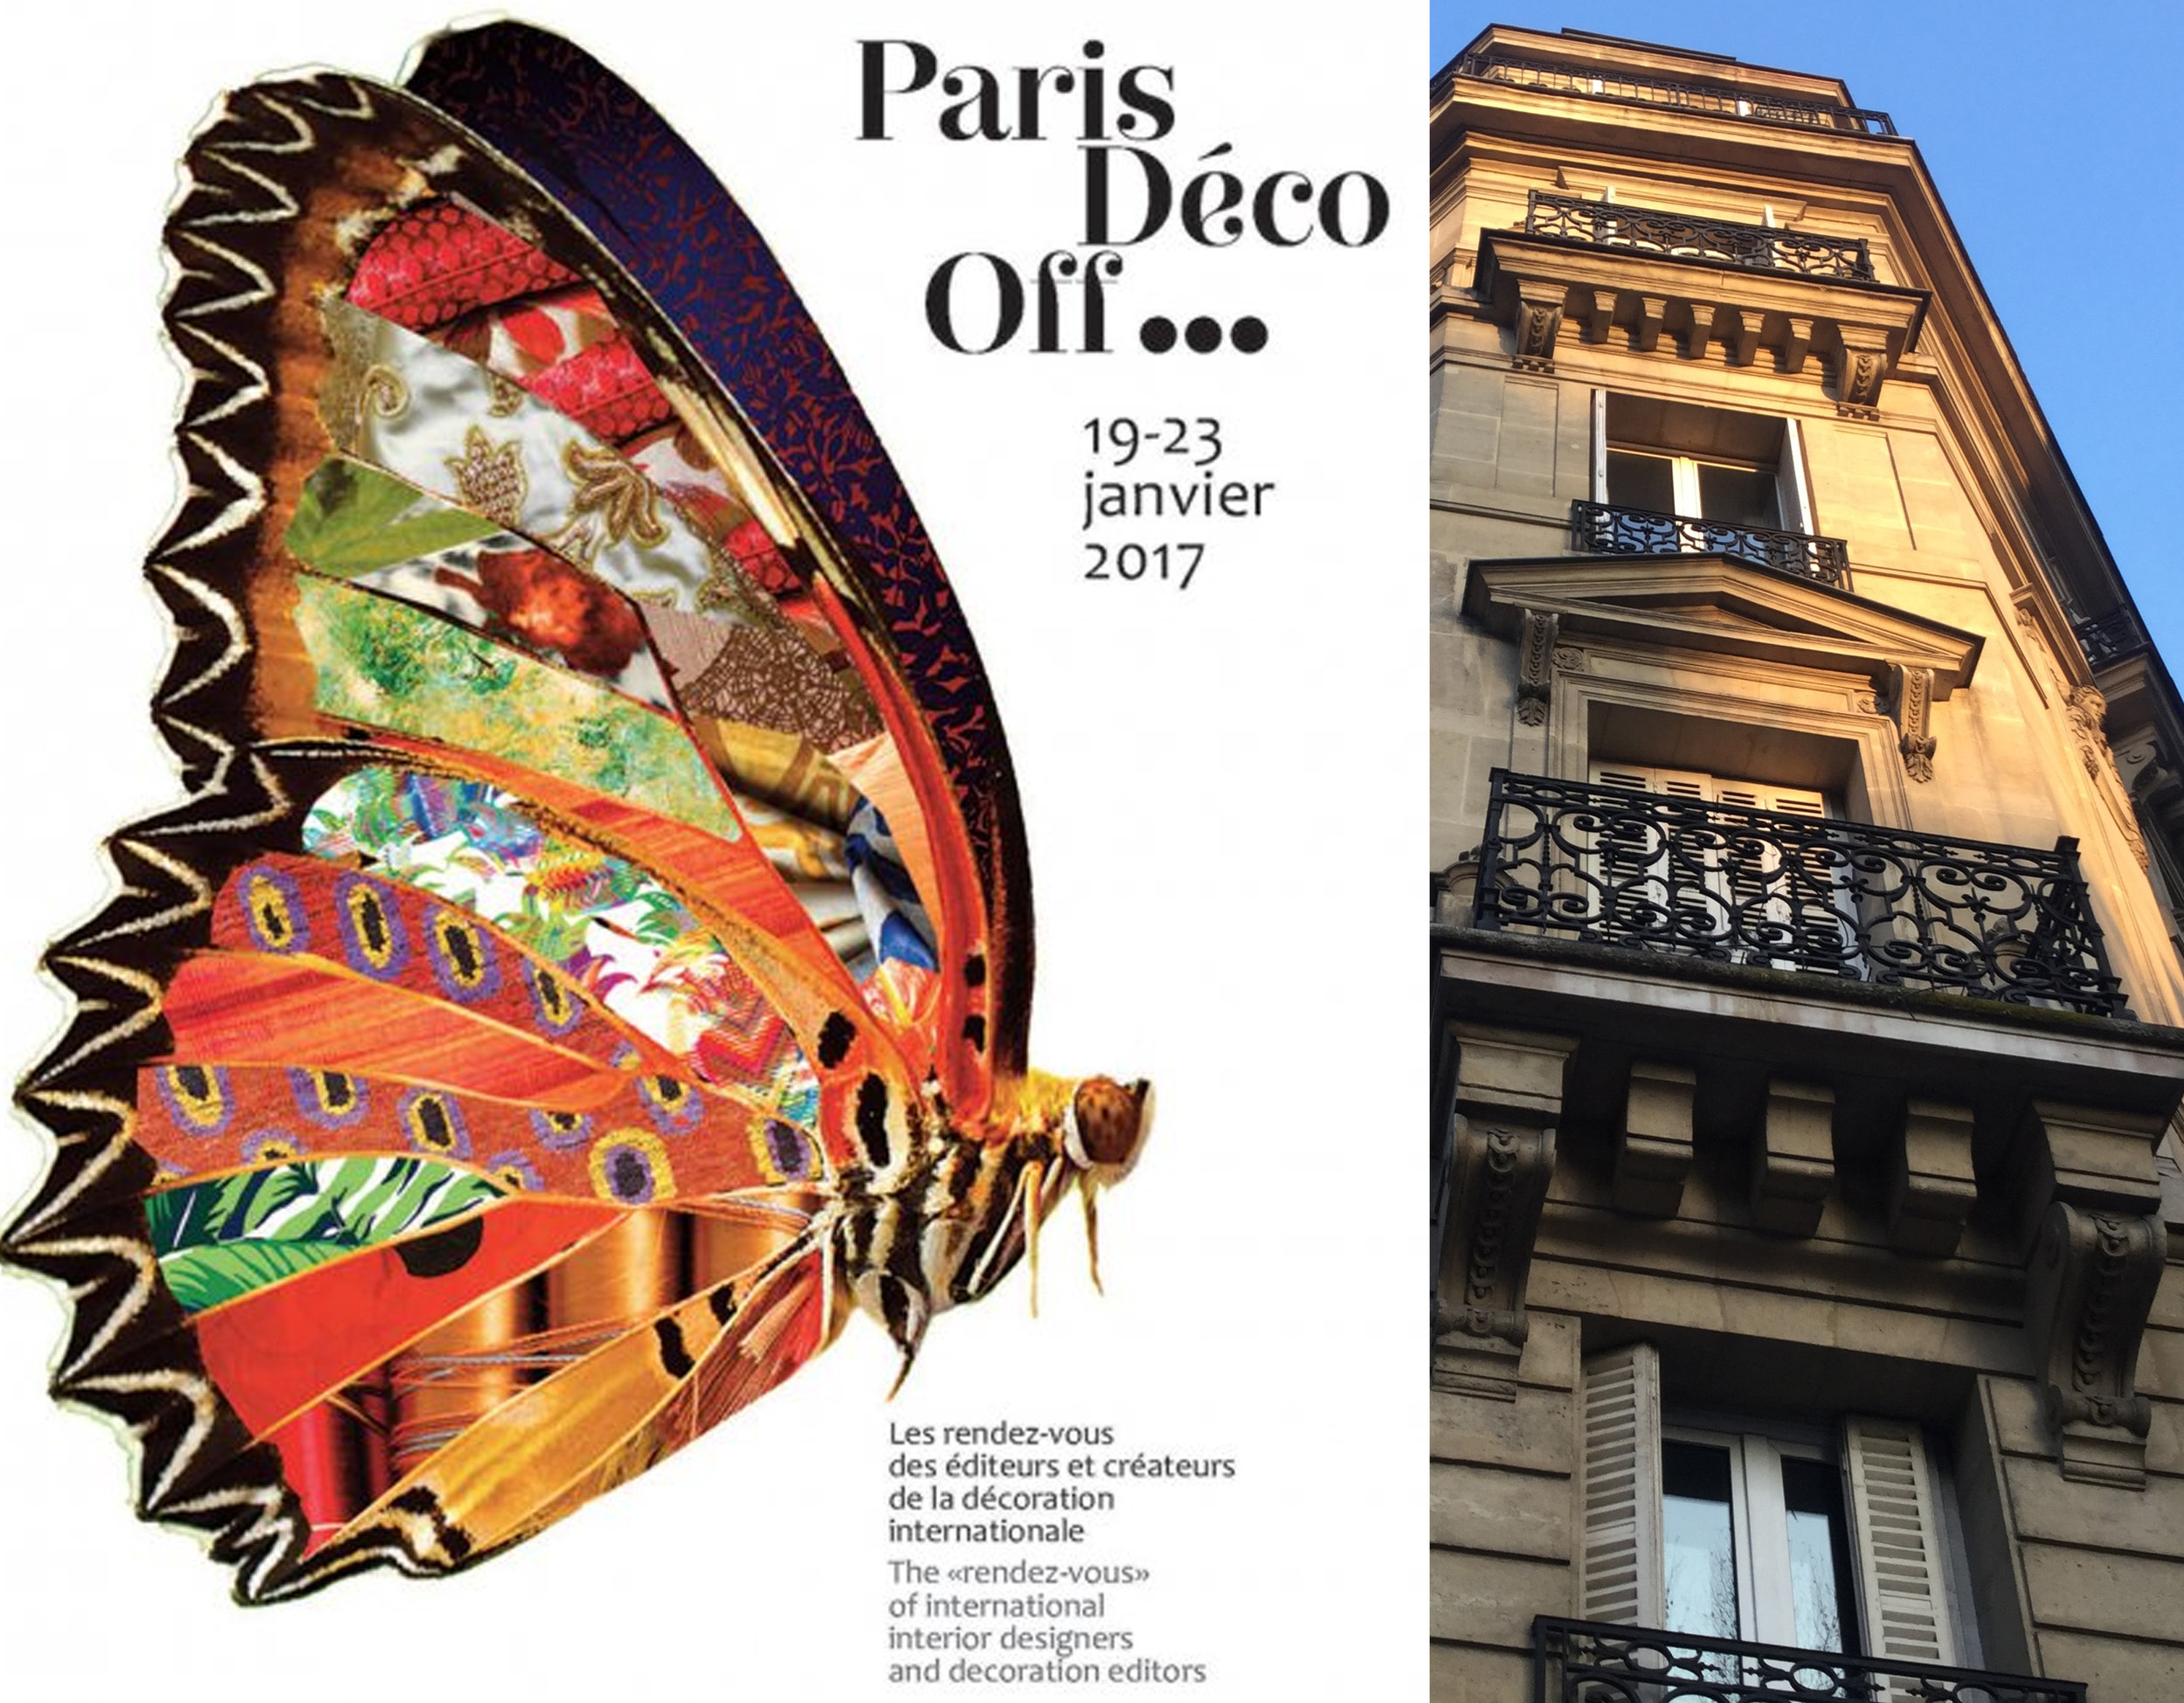 Paris Deco Off 2017.jpg